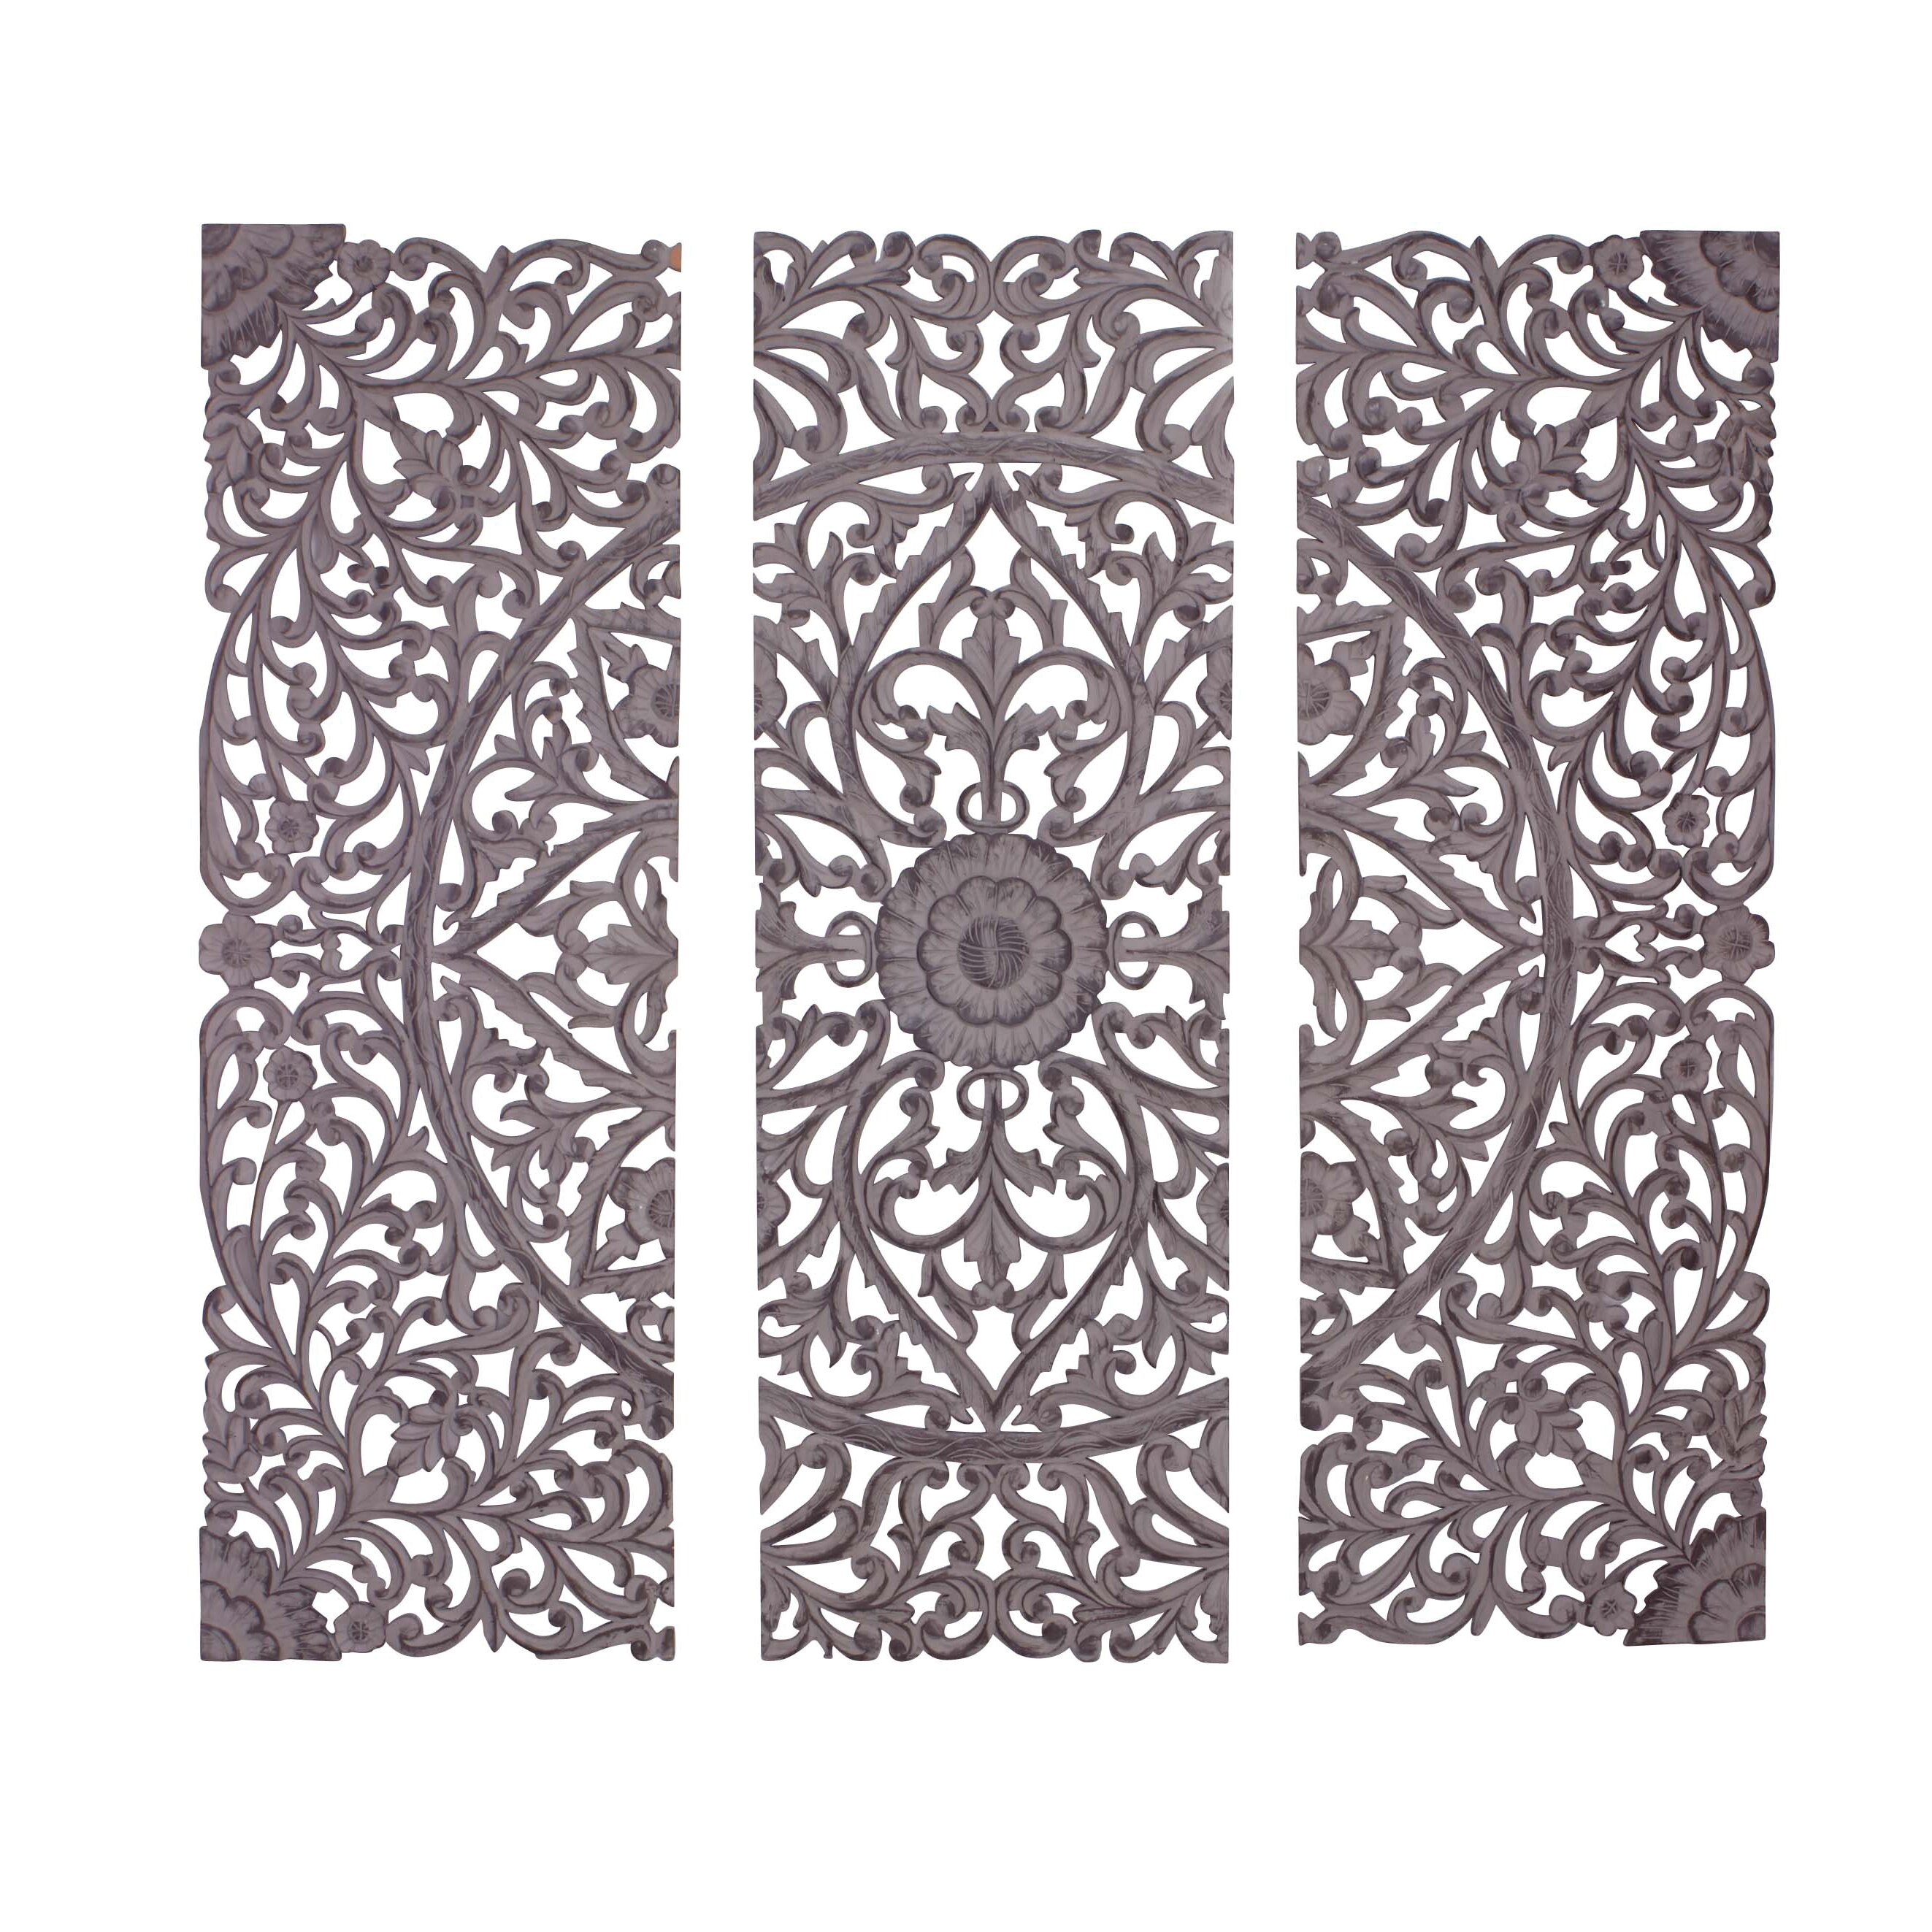 3 Piece The Must Have Wood Carved Panel Wall D 233 Cor Set